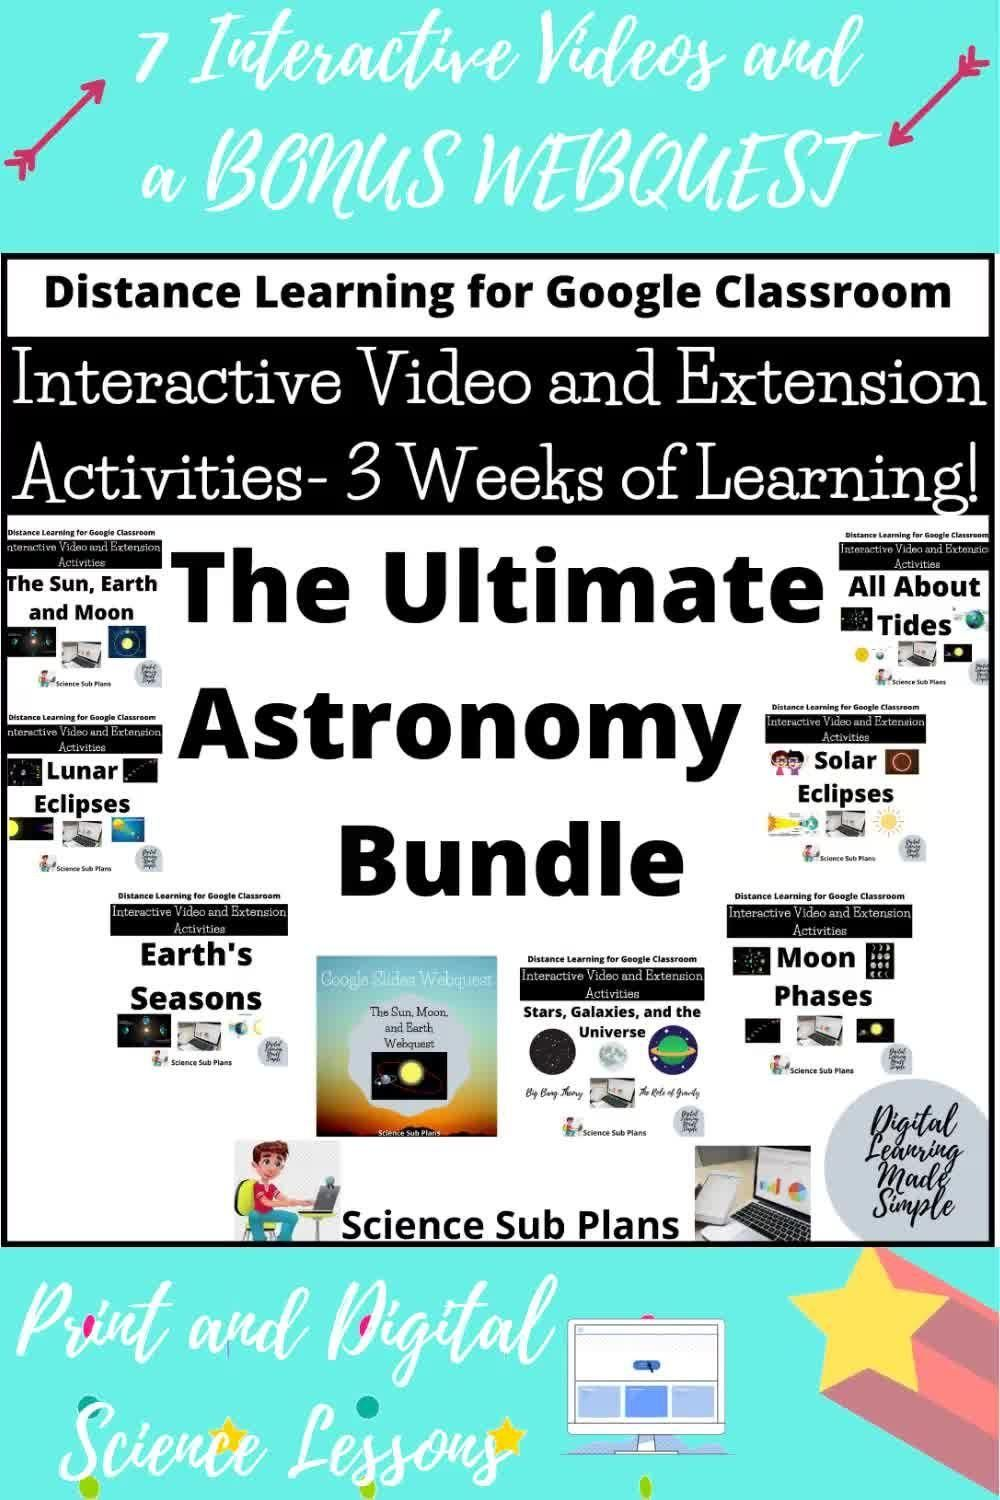 Astronomy Interactive Videos And Webquests Remote Learning About The Sun Moon And E In 2020 Science Lessons Science Lessons Elementary Science Lessons Middle School